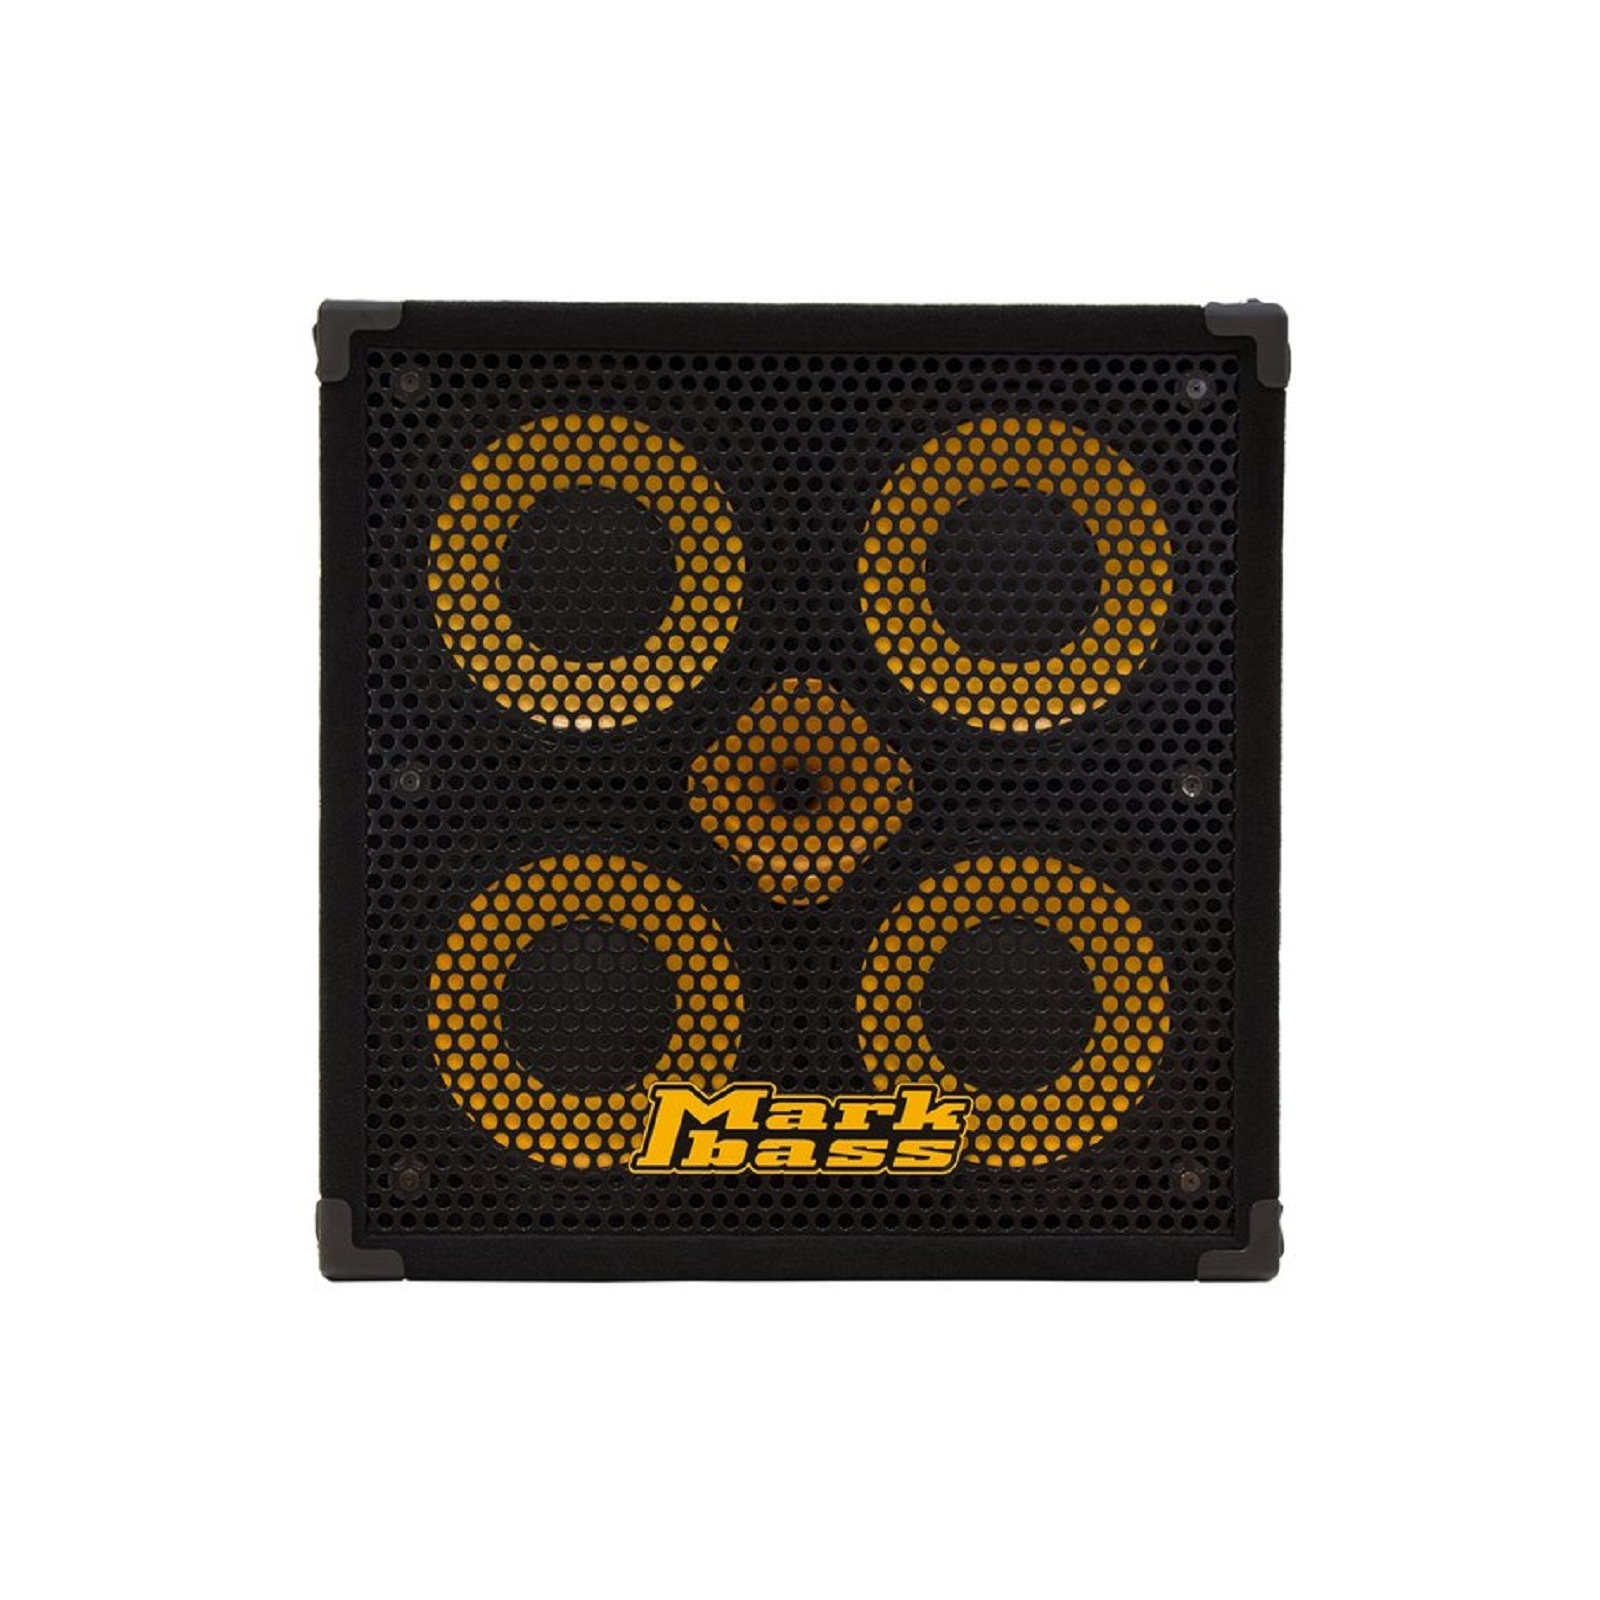 "MARK BASS STD-104HR-4 4"" x 10"" BASS CABINET (4 OHM)"